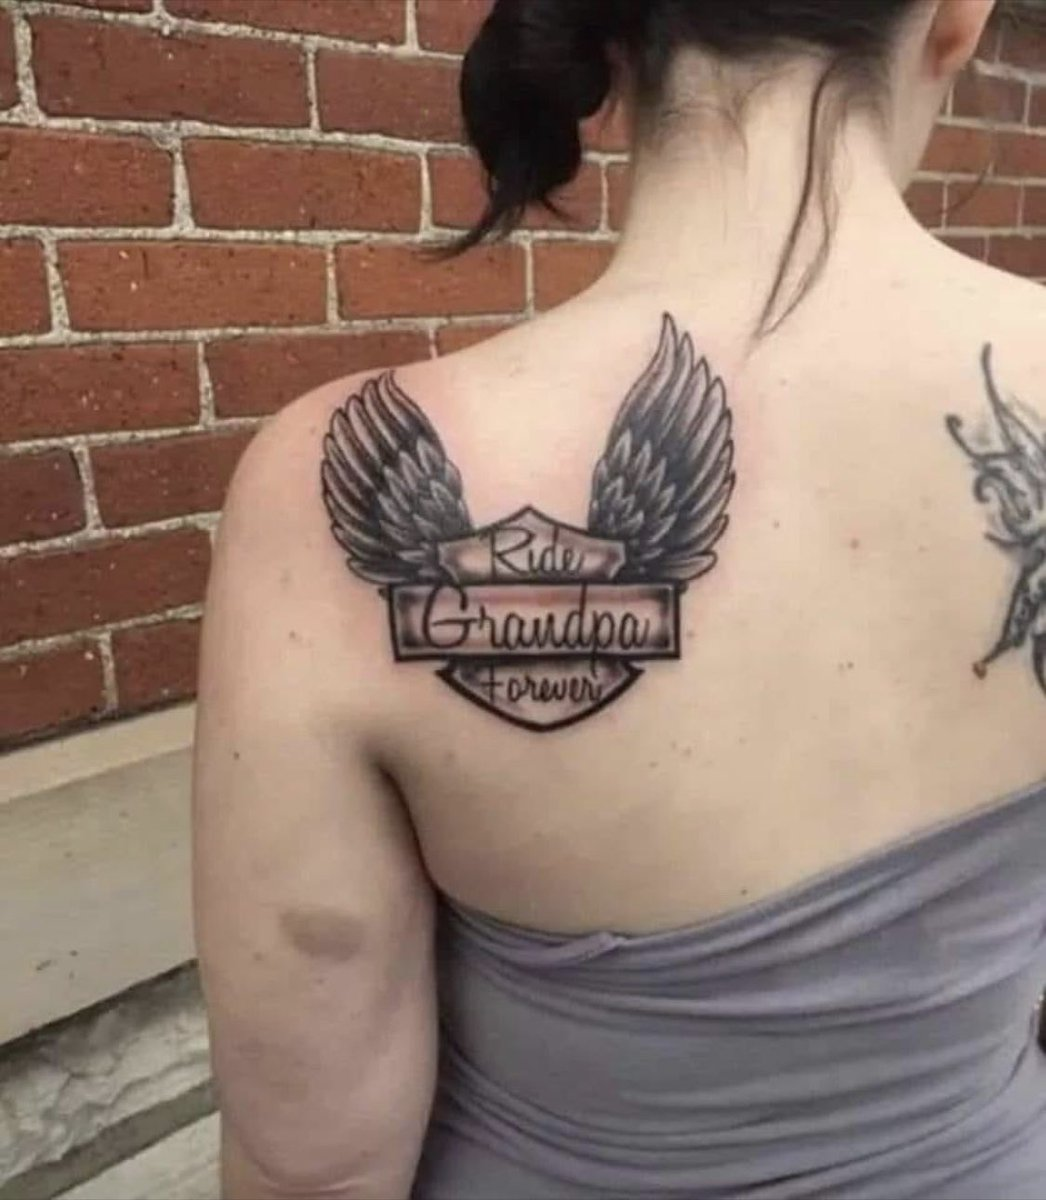 14 Tattoo Fails From This Year That'll Have You Gasping